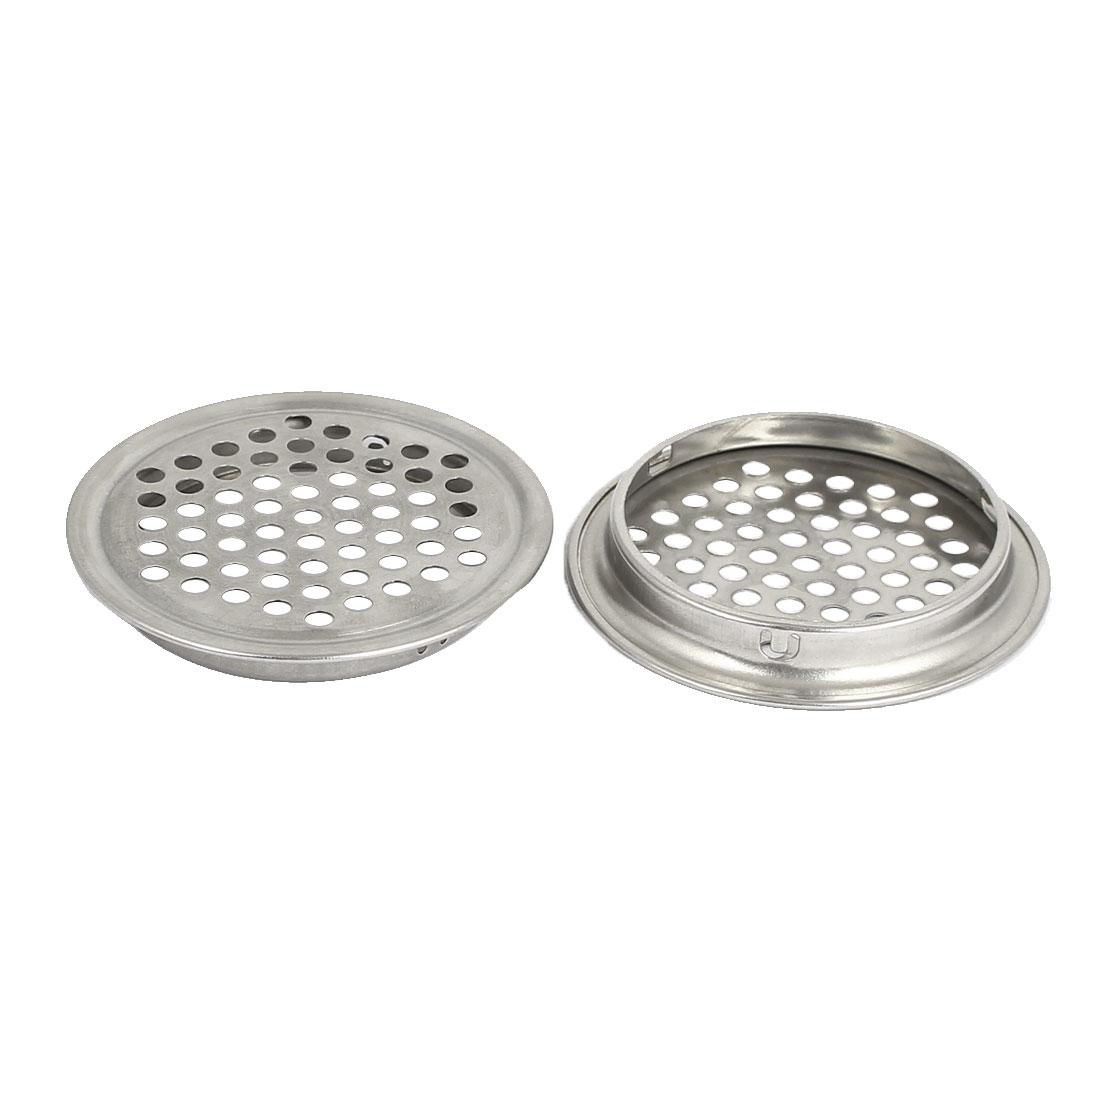 Kitchen Stainless Steel Sink Strainer Waste Disposer Drain Filter 2 Pcs